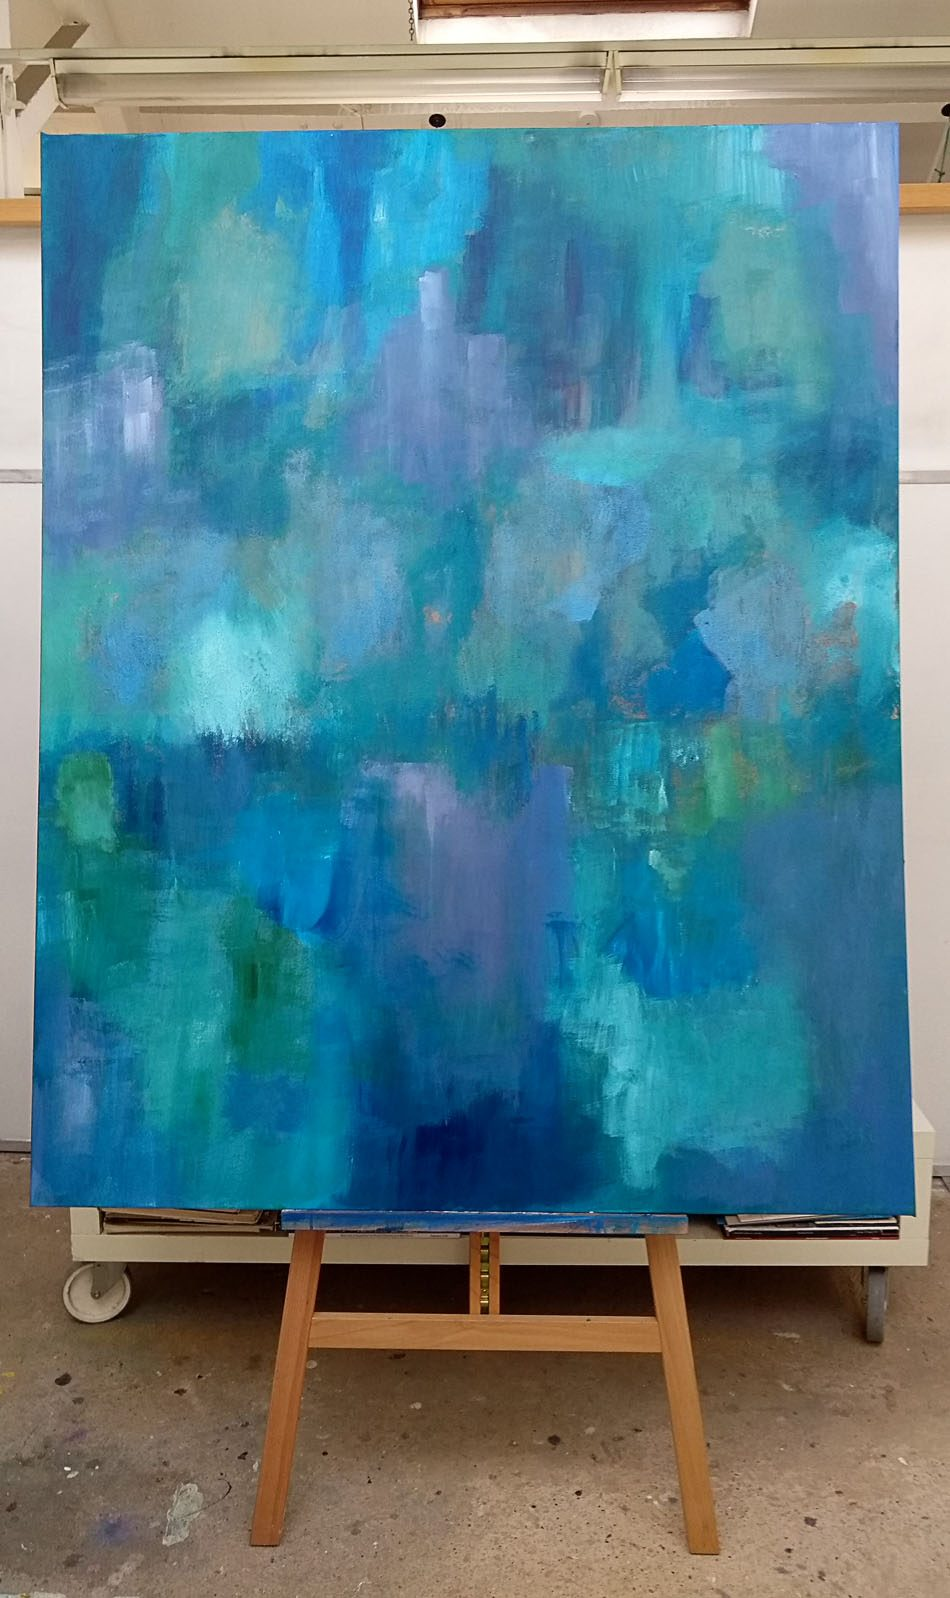 Catastrophe (On Easel)